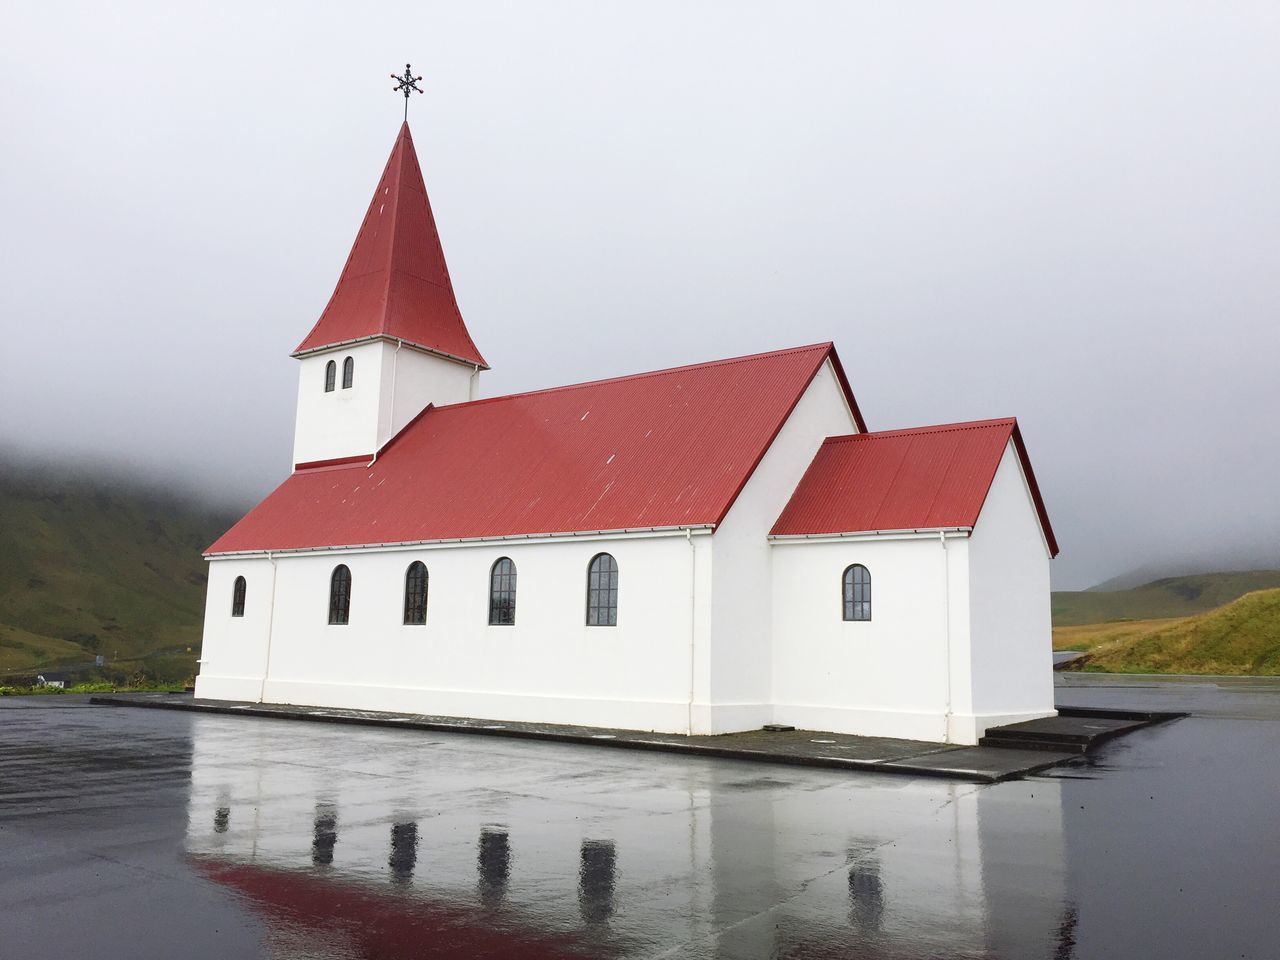 architecture, built structure, building exterior, water, outdoors, no people, day, fog, place of worship, lake, sky, nature